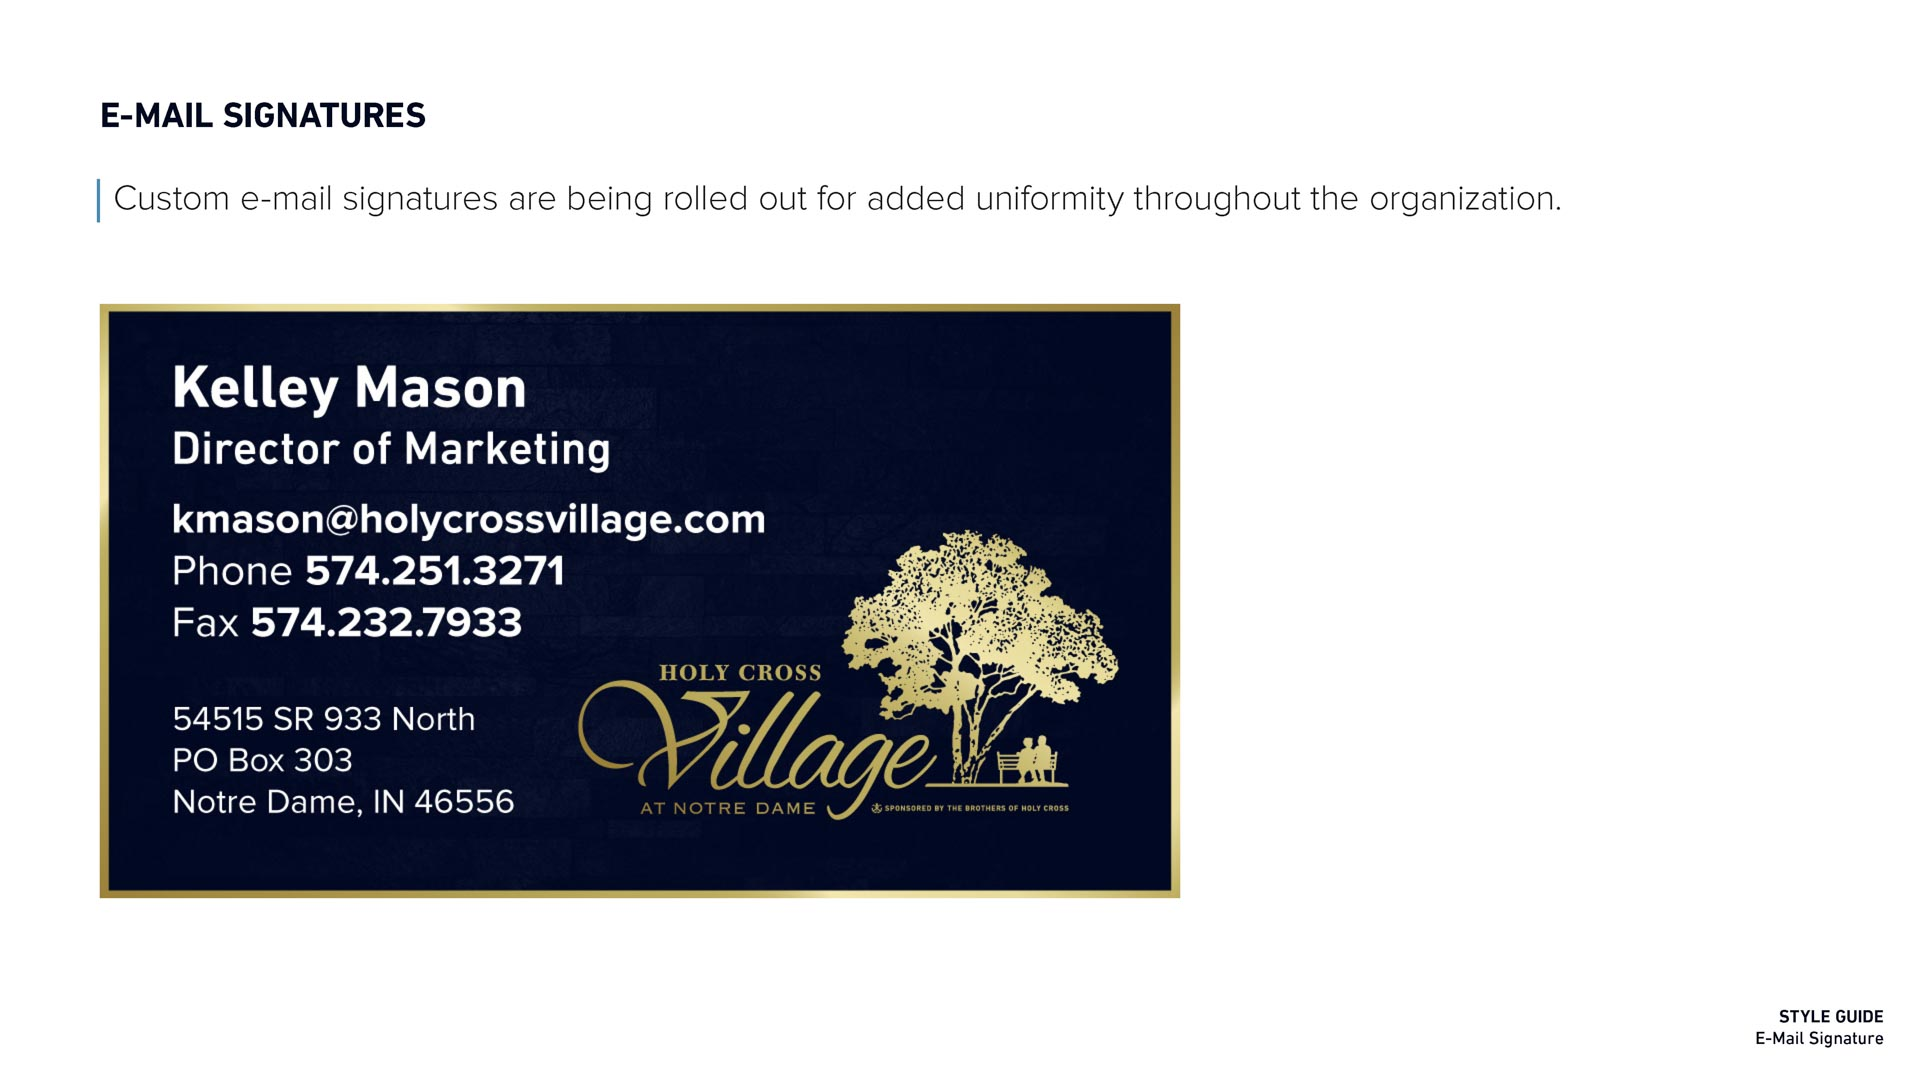 Holy Cross Village's Email Signature